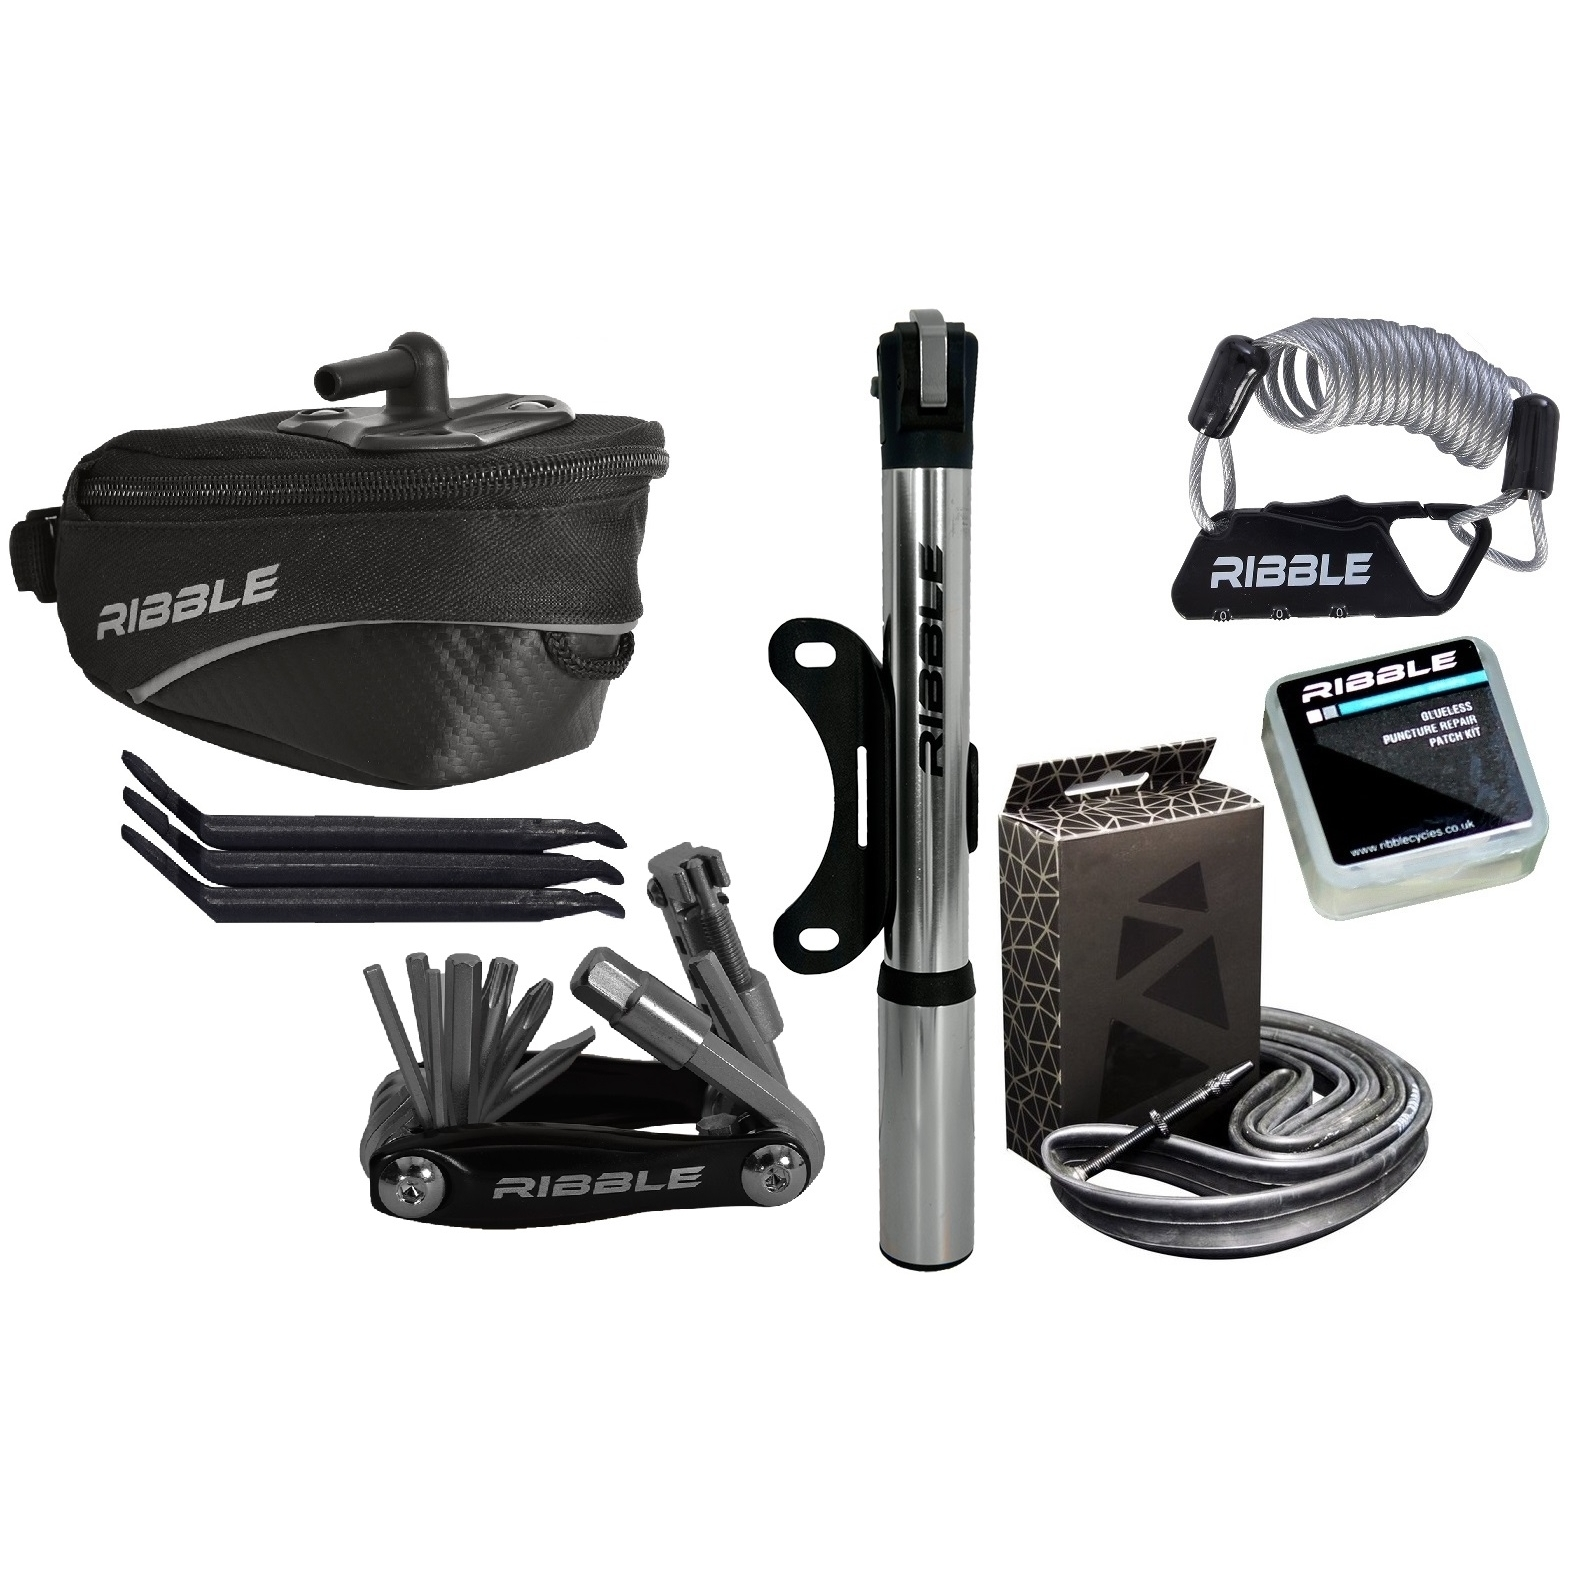 Ribble - Ride Essentials Bundle - Reduced Again.